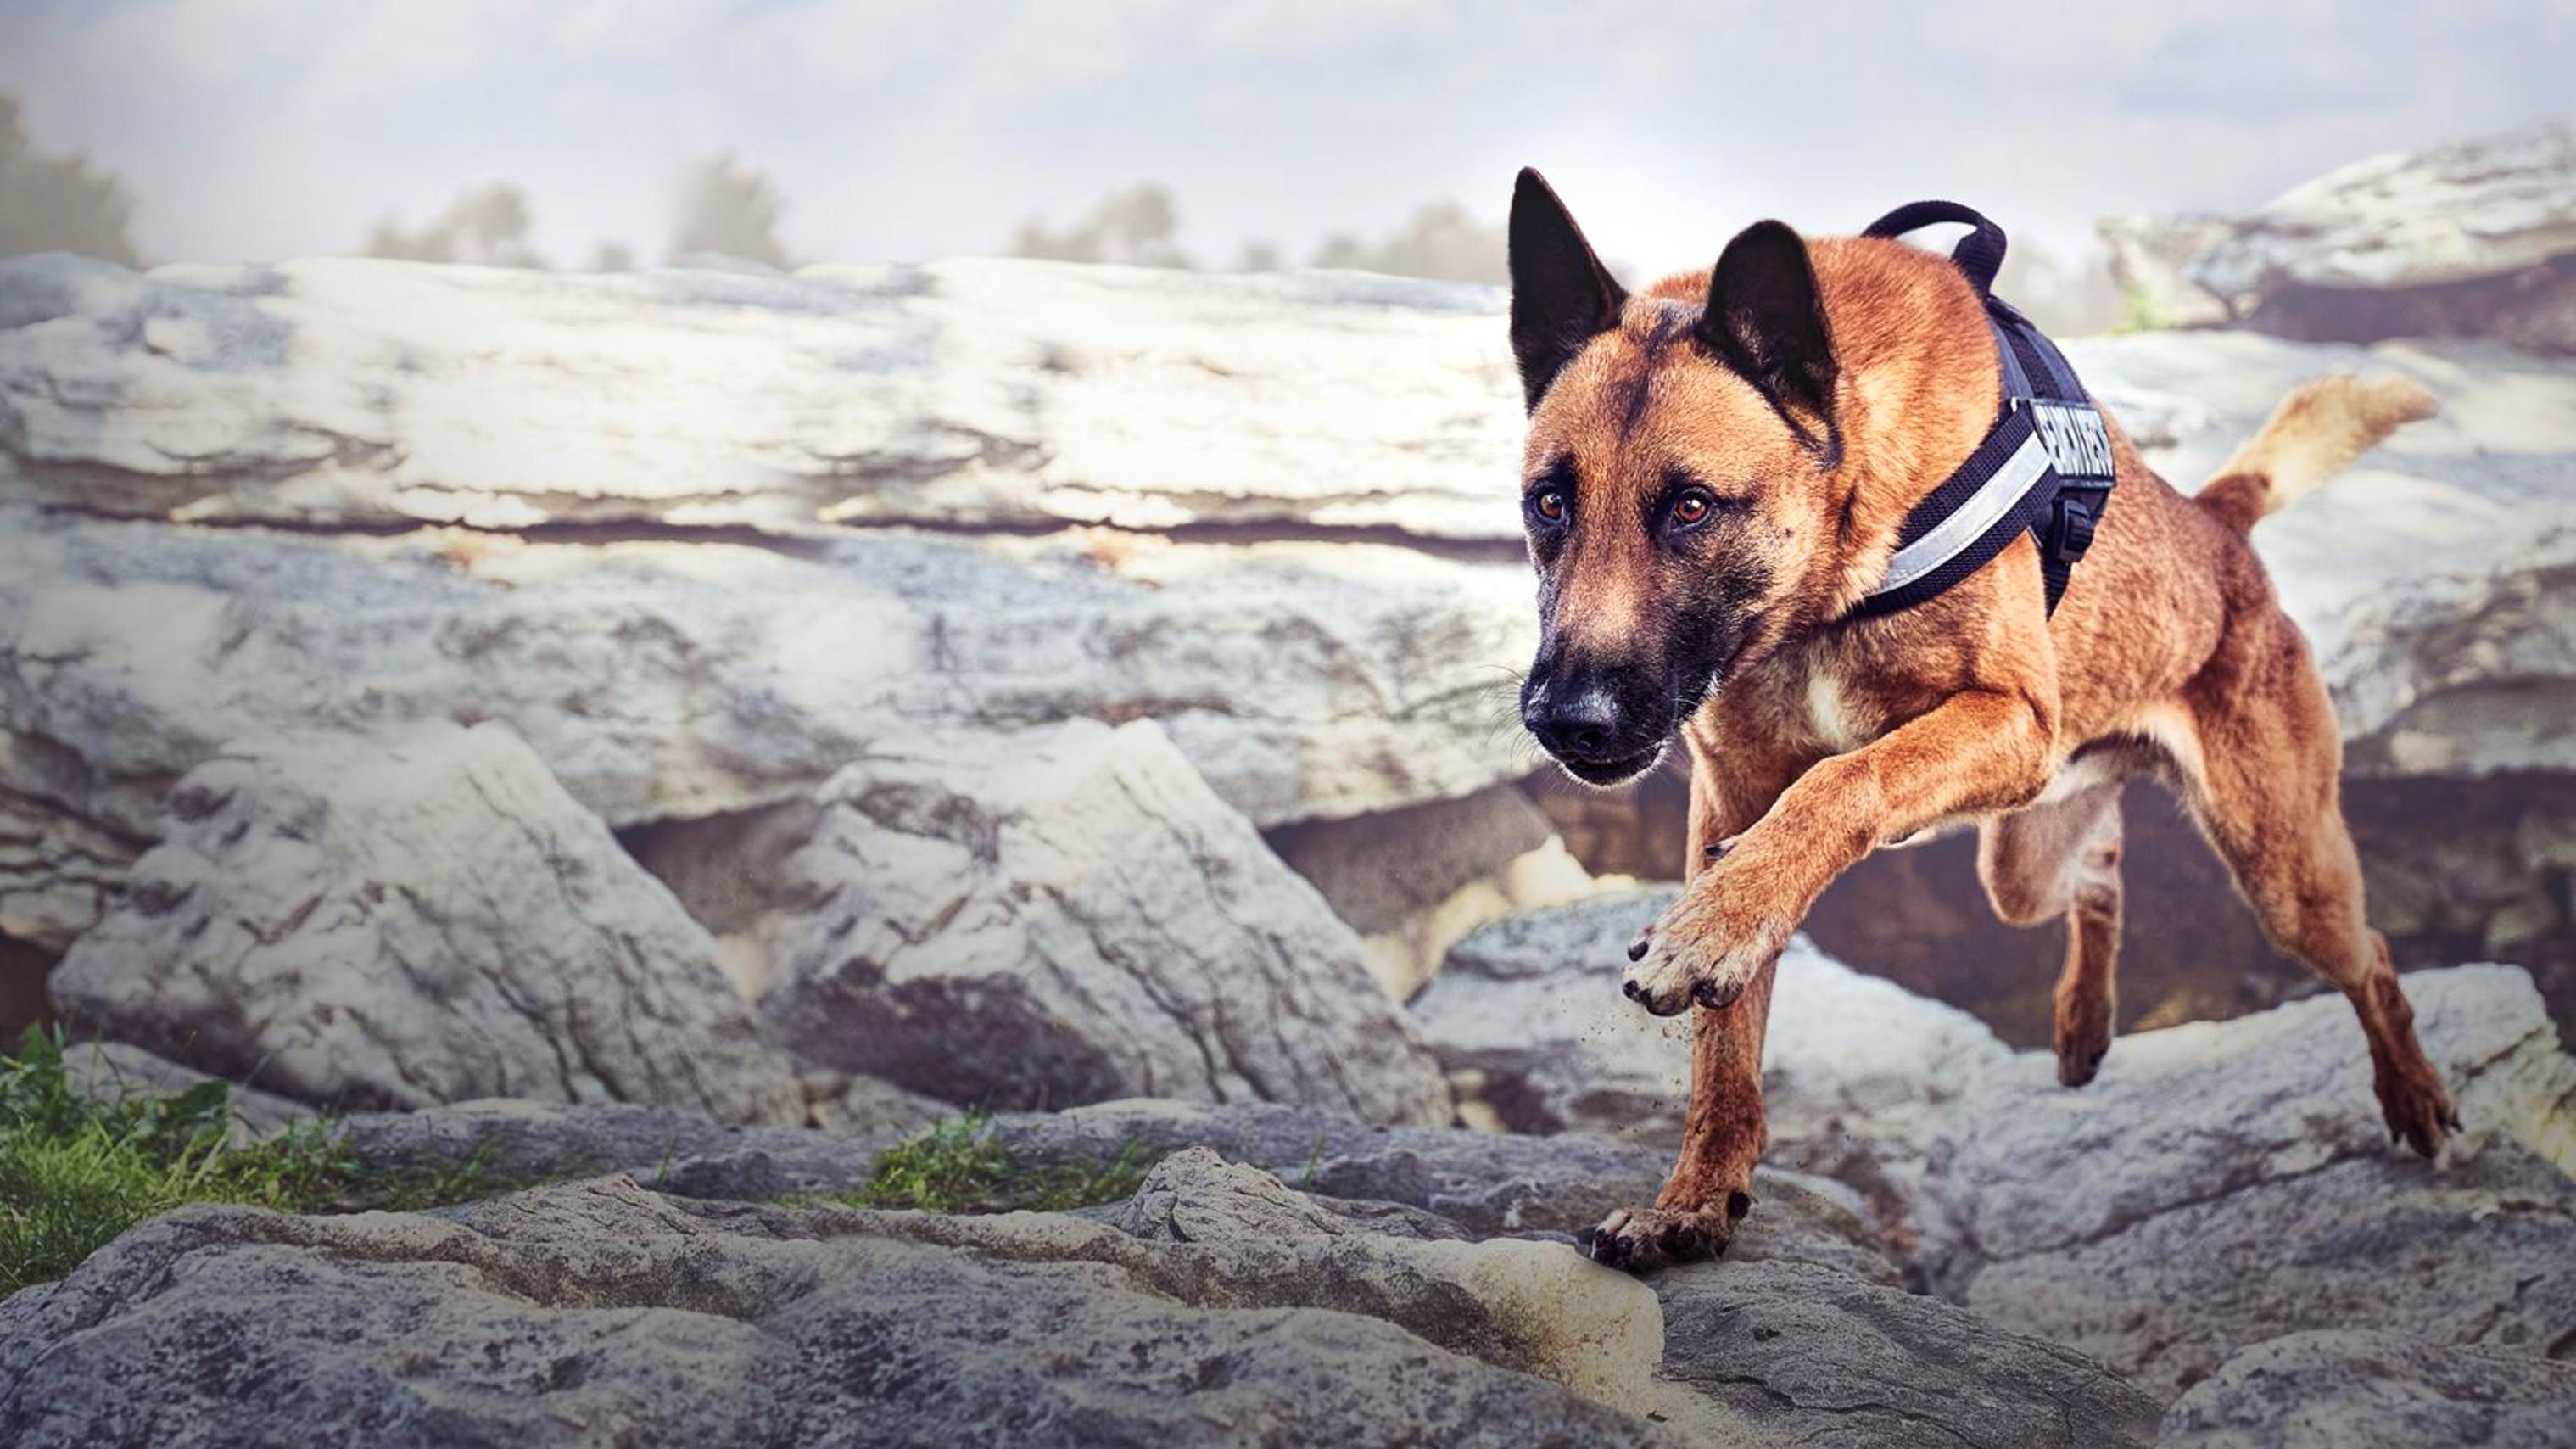 Malinois Service dog climbing over rocks